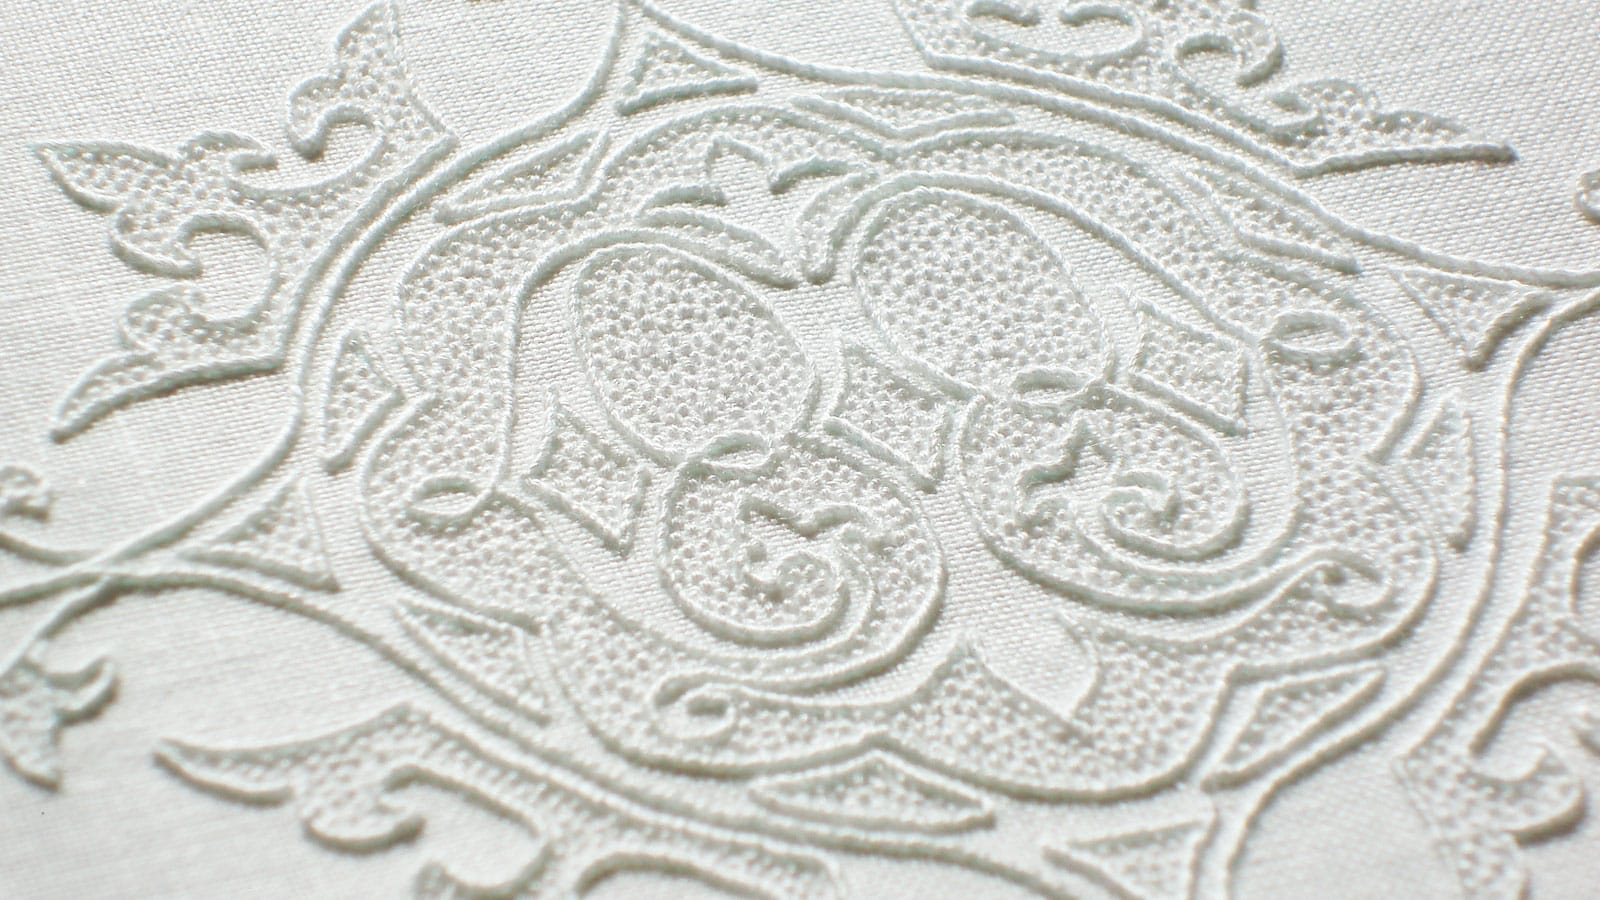 How To Make An Embroidery Pattern Needlenthread Tips Tricks And Great Resources For Hand Embroidery